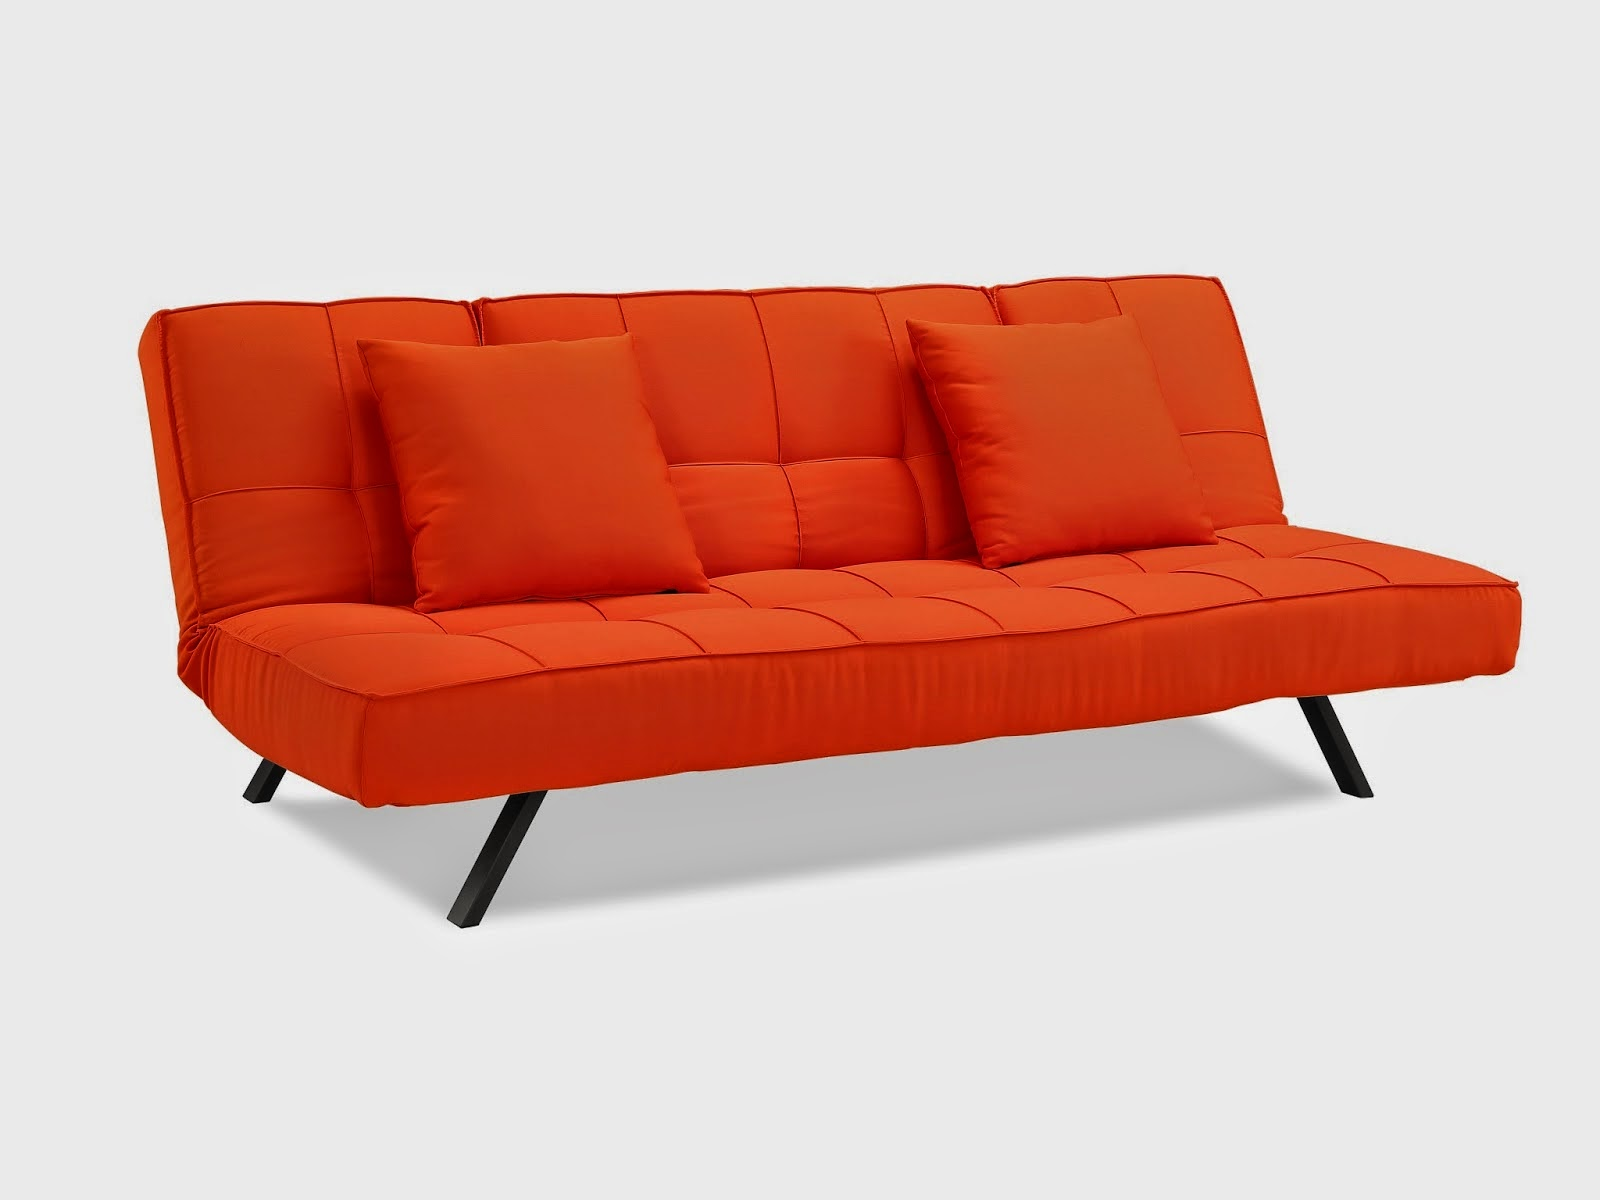 Copa Outdoor Sofabed Futon